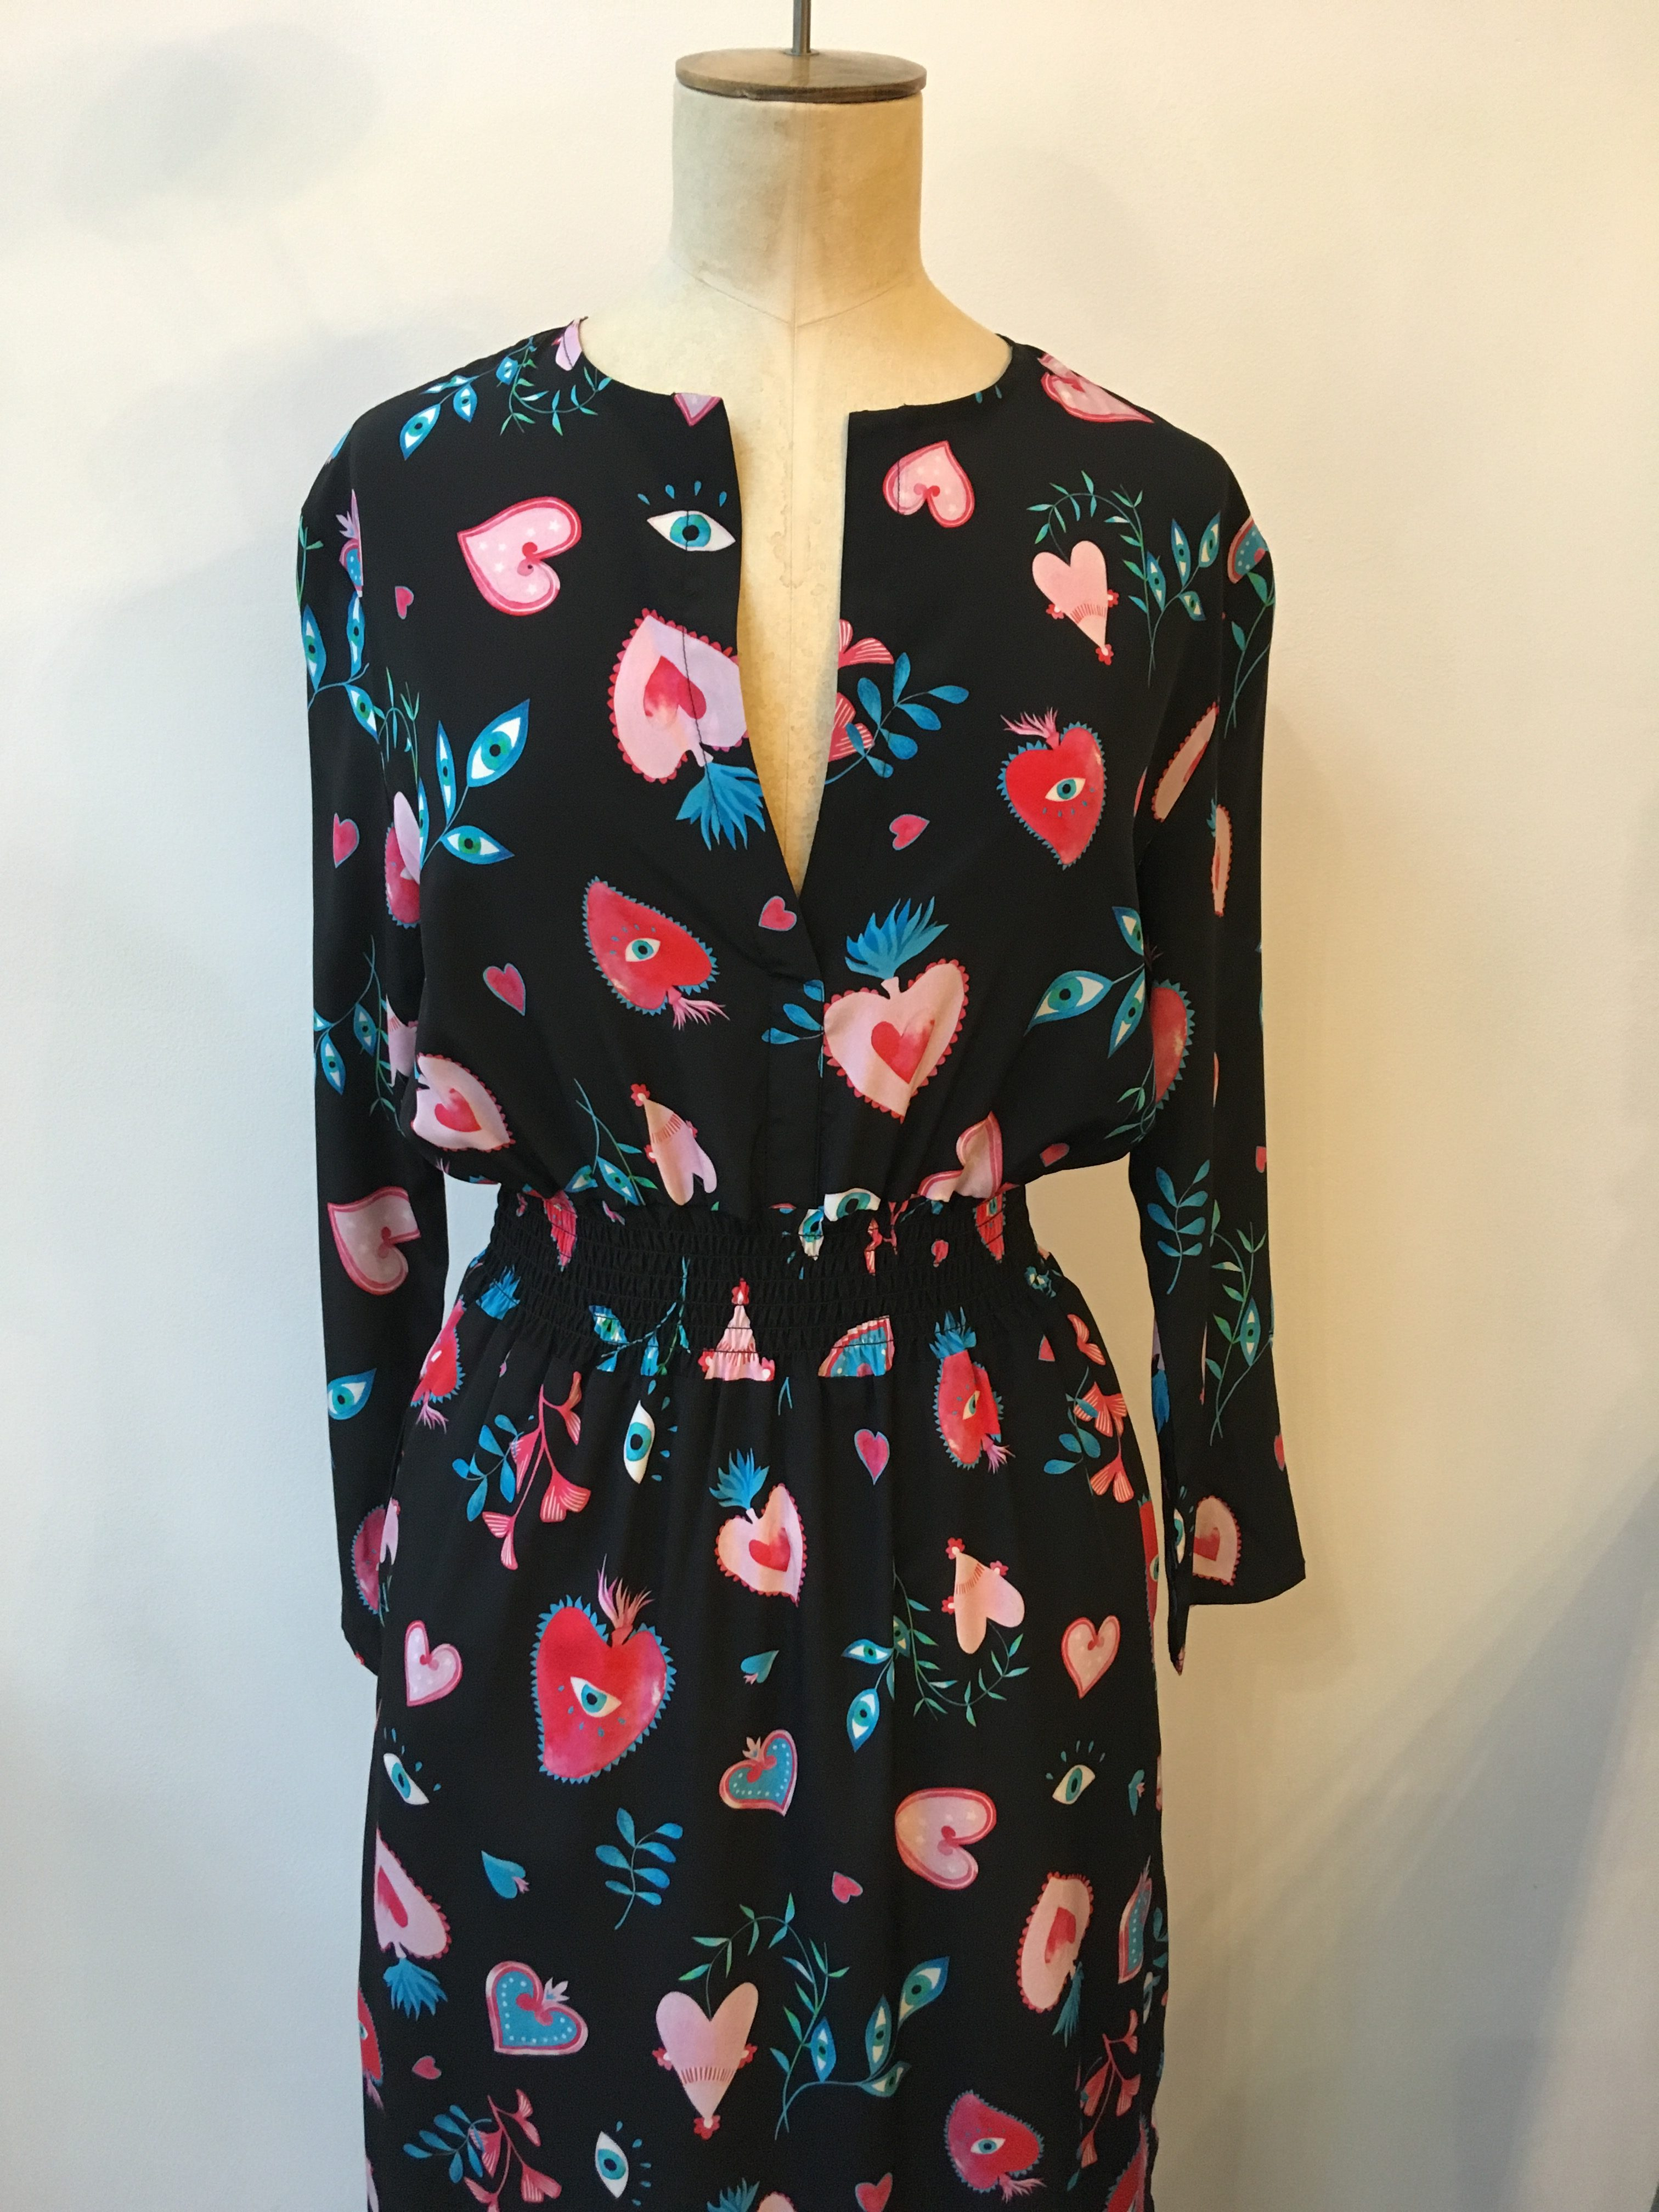 Primrose Park Tiffany Dress in Sacred Hearts Print